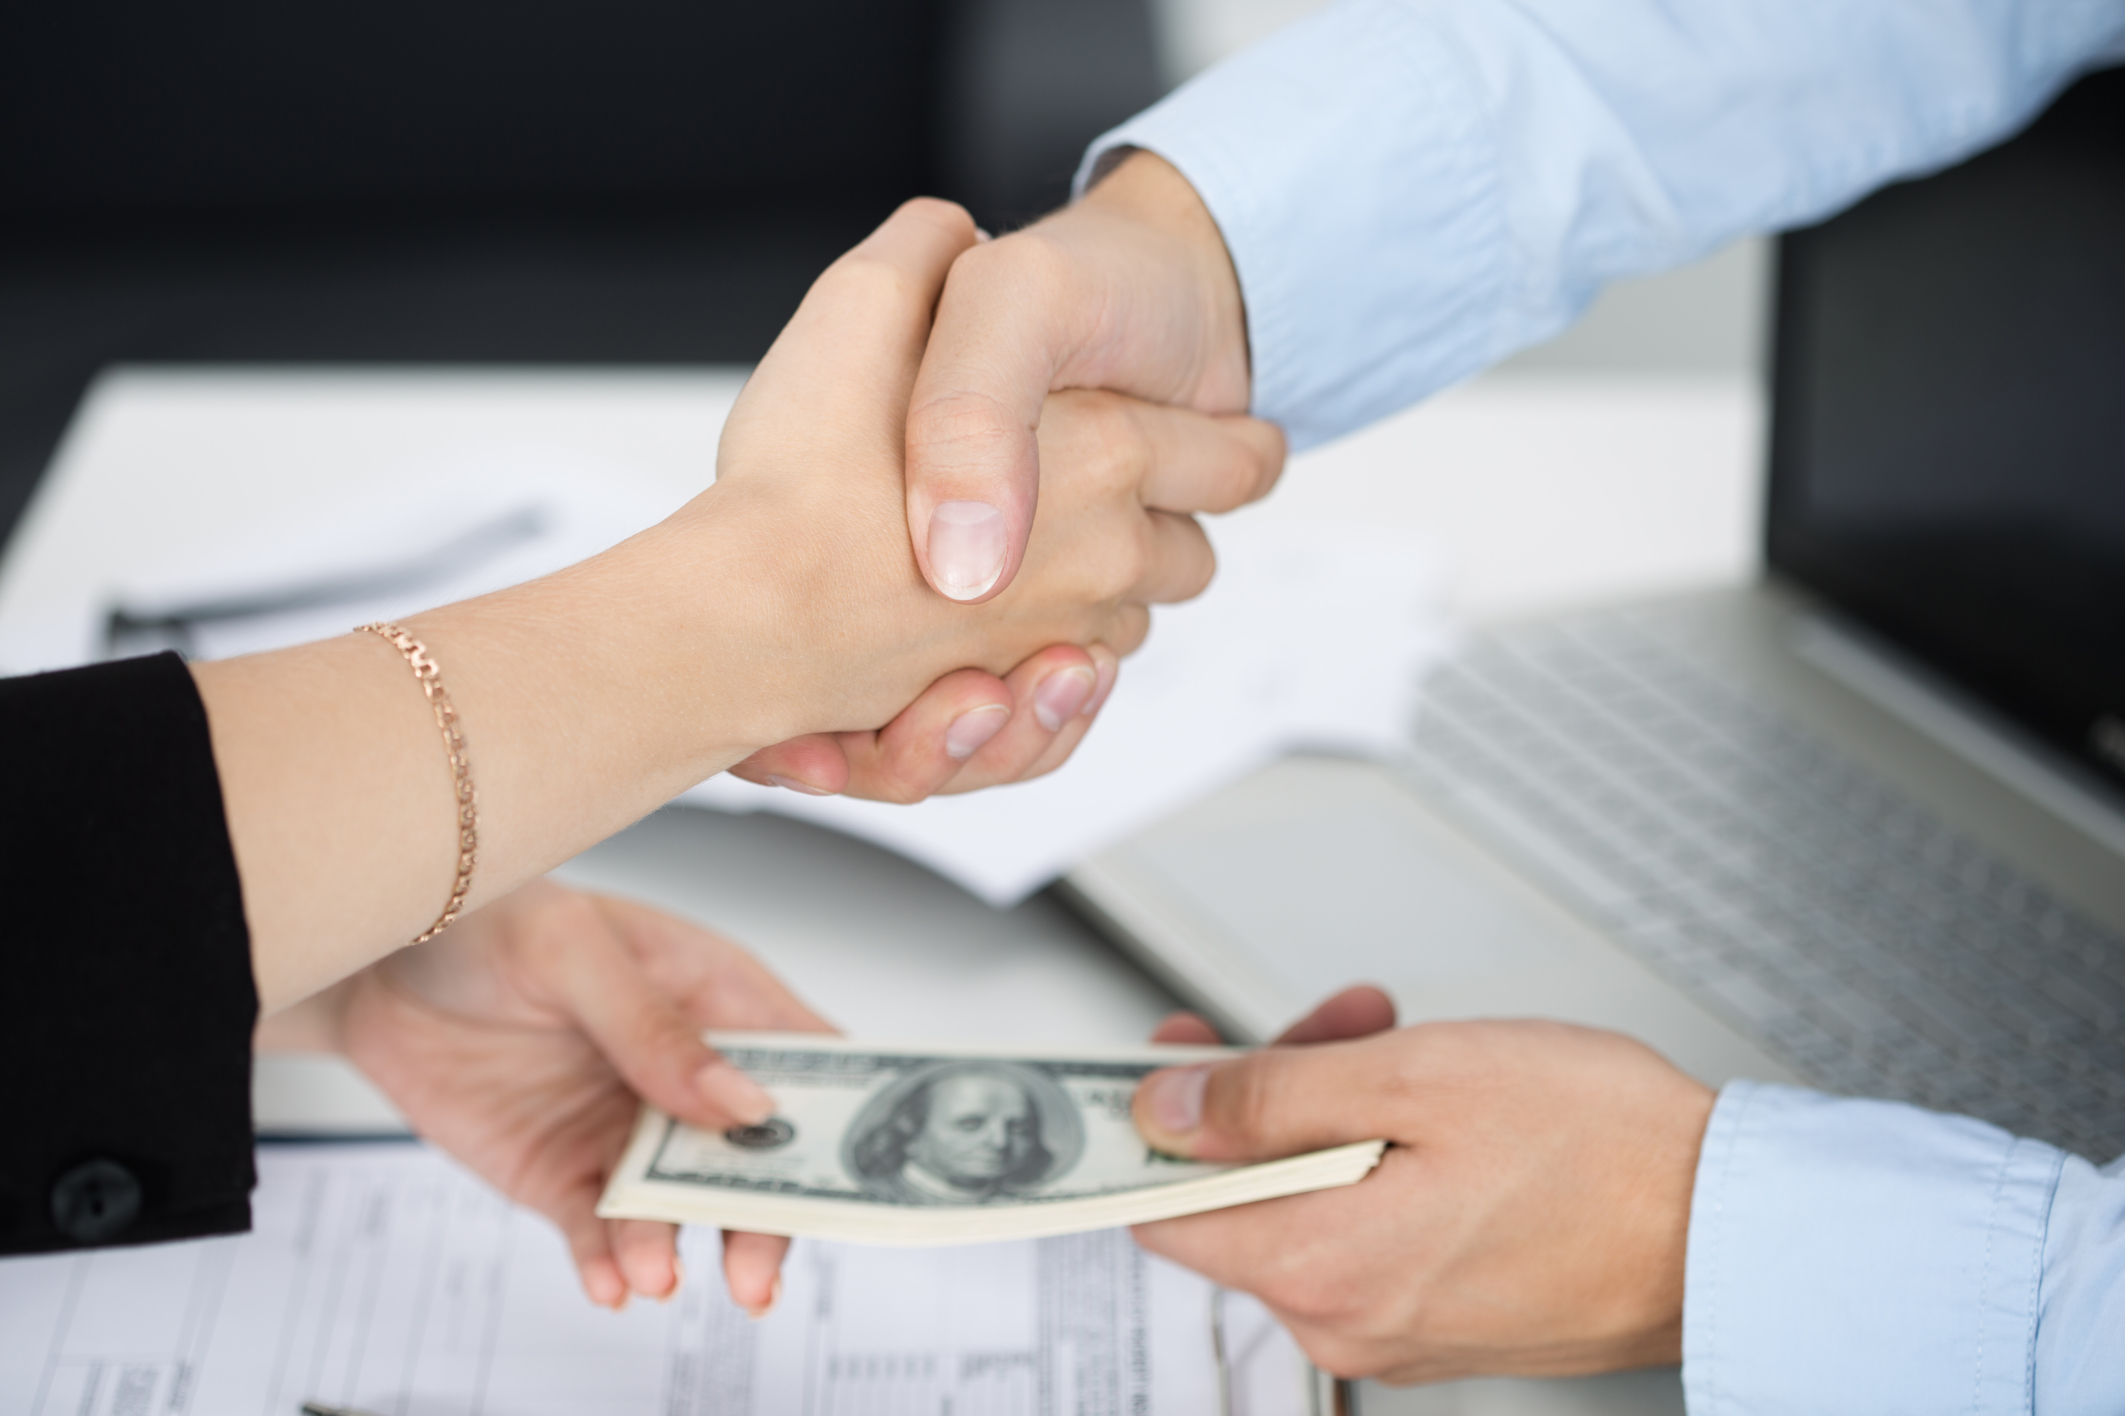 Cash Loans NZ Work Well For Car Purchases